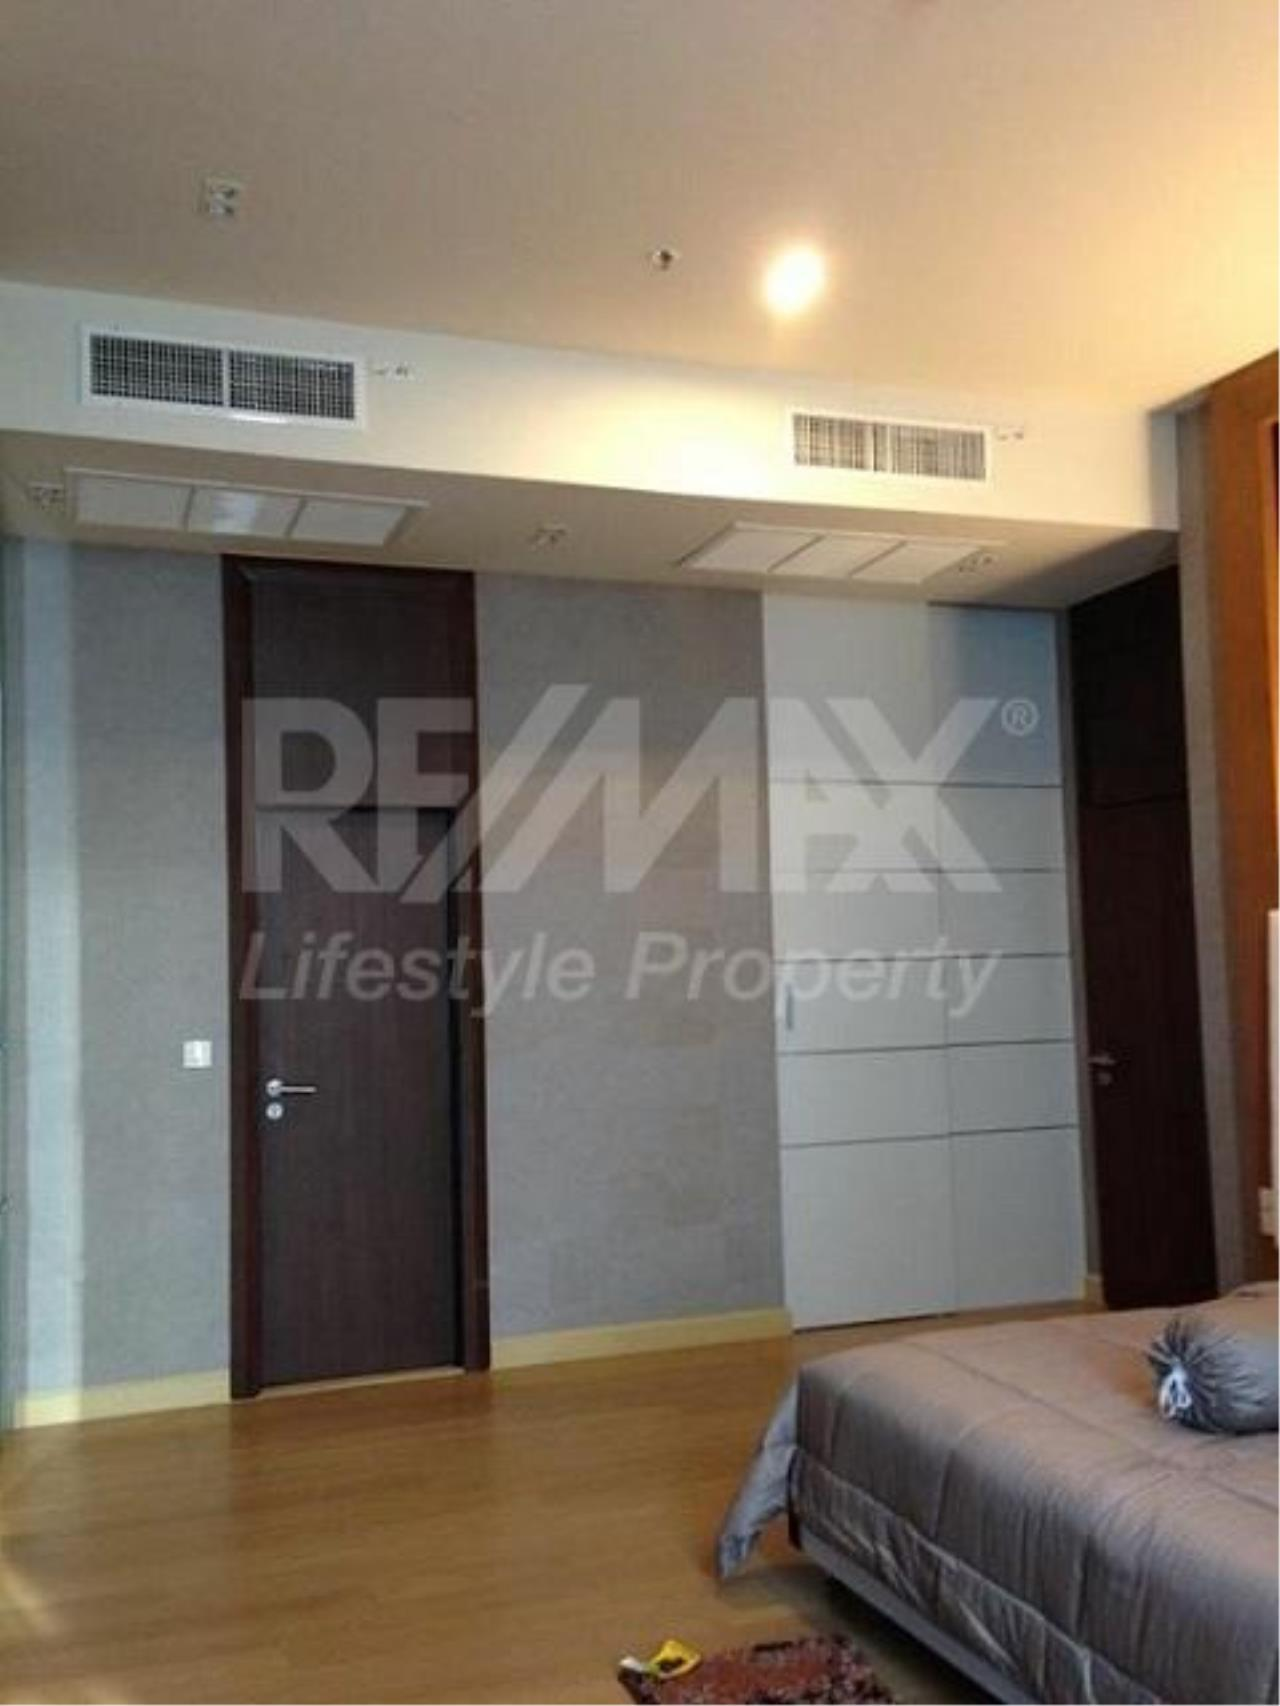 RE/MAX LifeStyle Property Agency's Le Luk 8